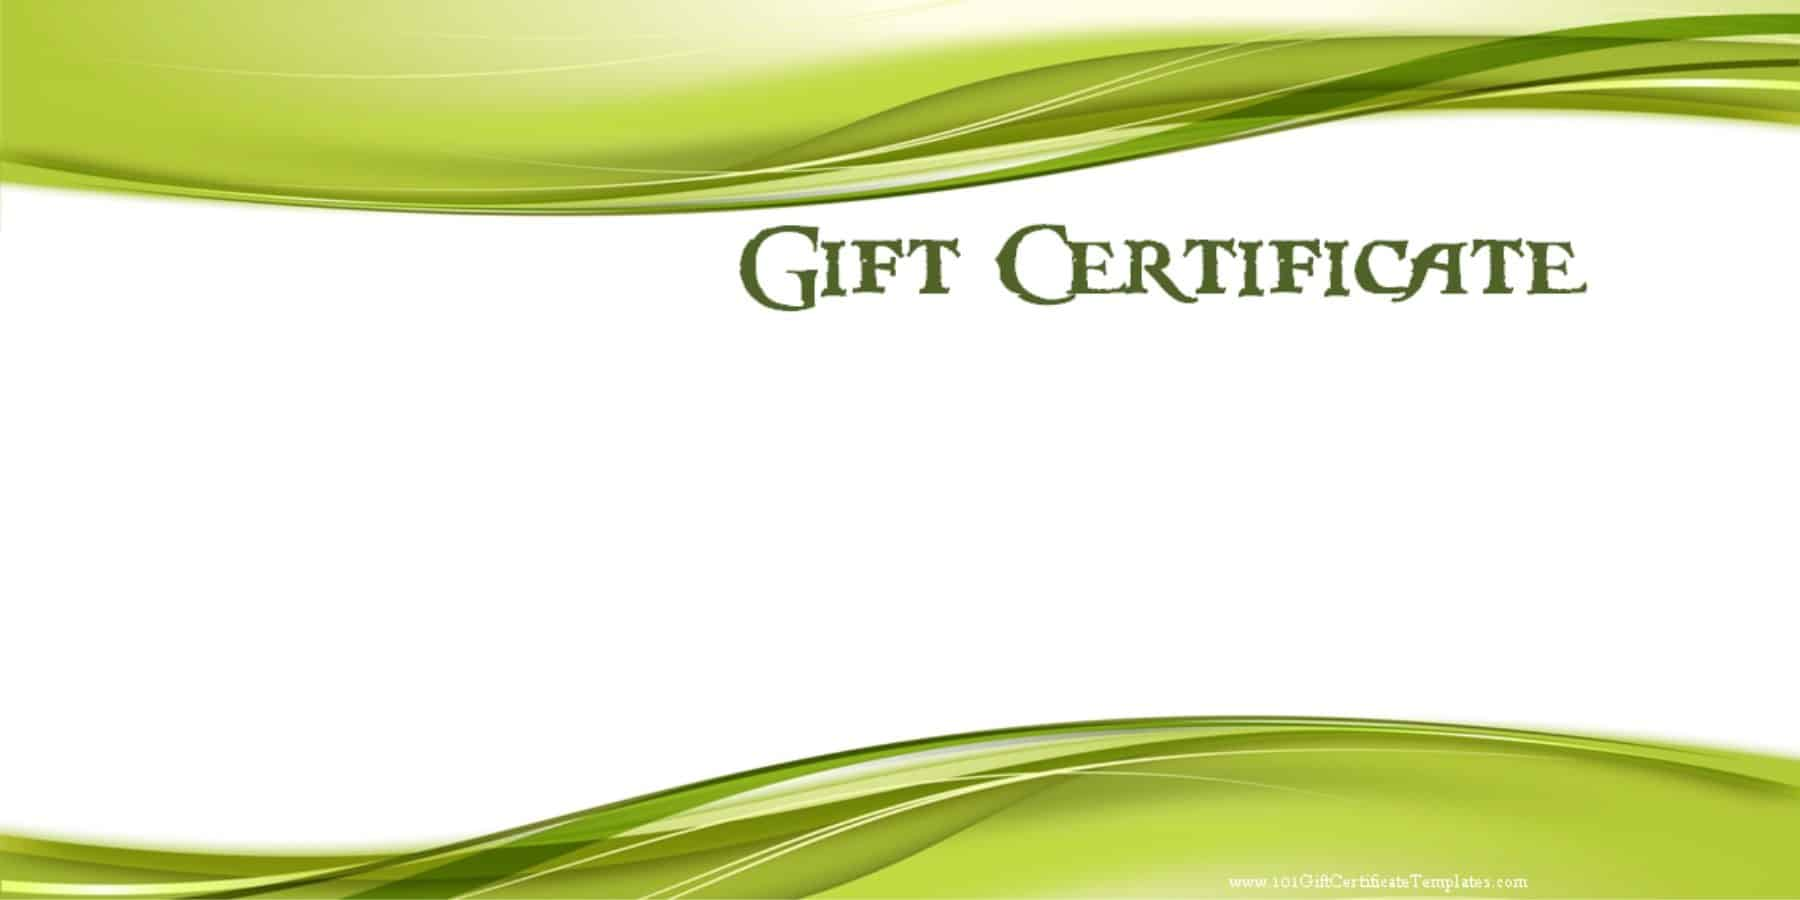 Blank Gift Certificate Which Can Be Customized CUSTOMIZE U0026 PRINT  Printable Gift Vouchers Template